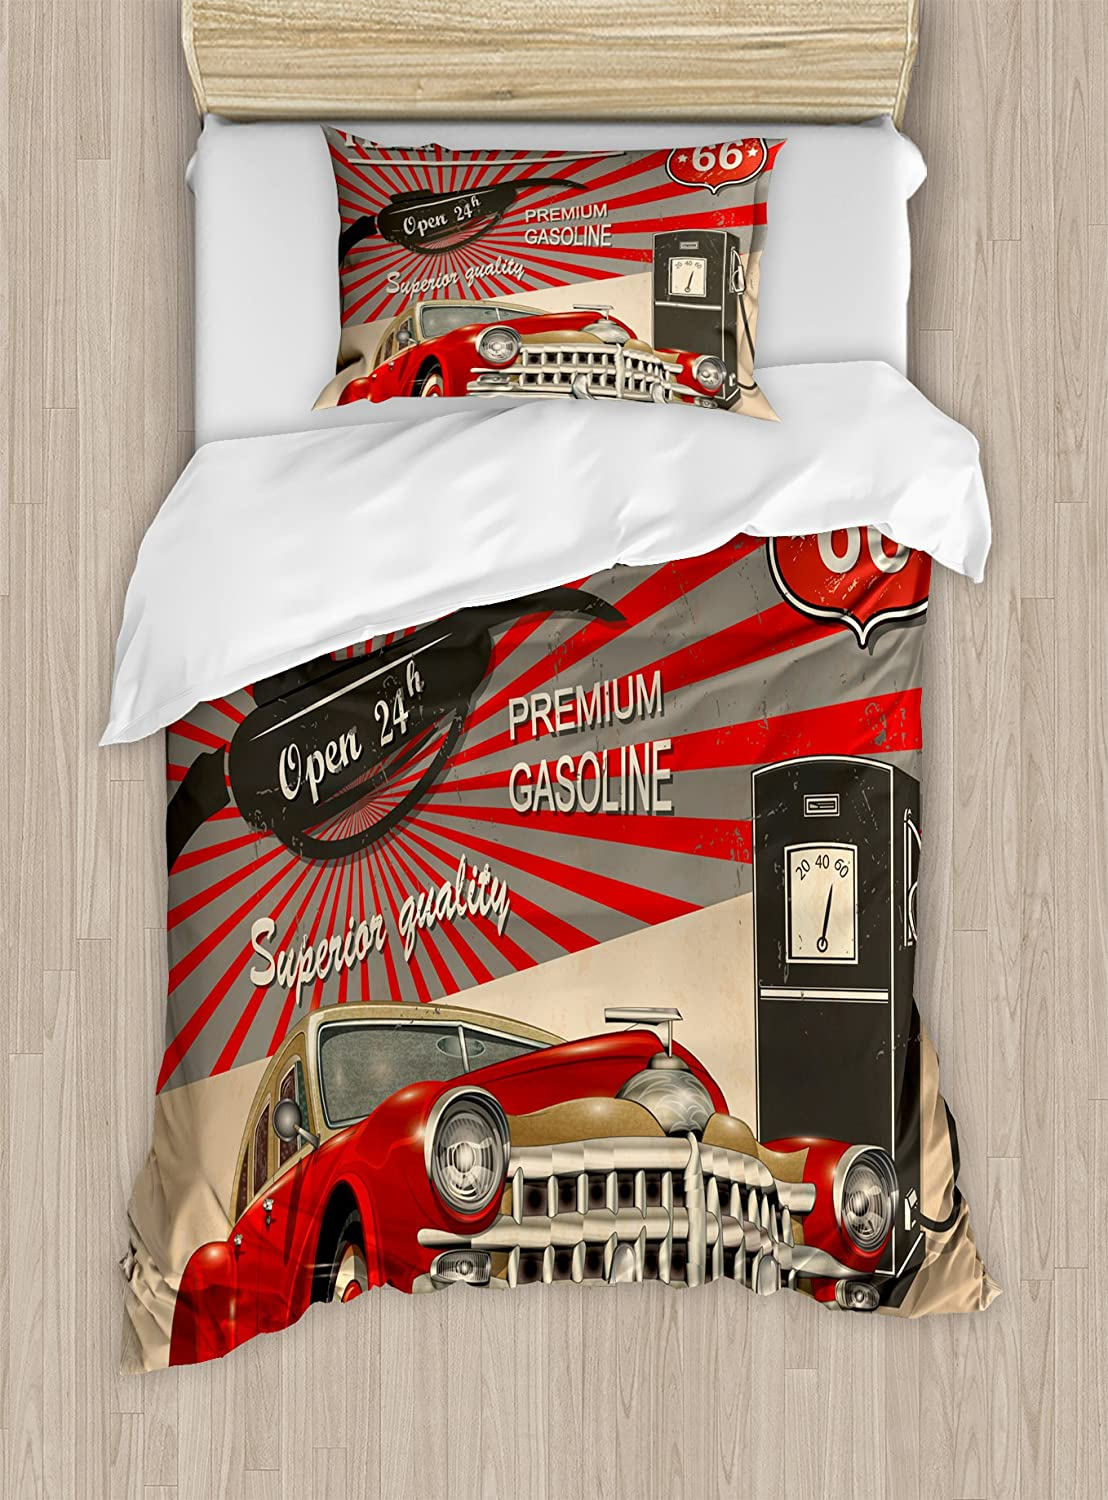 Ambesonne Cars Duvet Cover Set Twin Size, Poster Style Image of Gasoline Station Commercial Kitschy Element Route 66 Retro Print, A Decorative 2 Piece Bedding Set with 1 Pillow Sham, Vermilion Beige